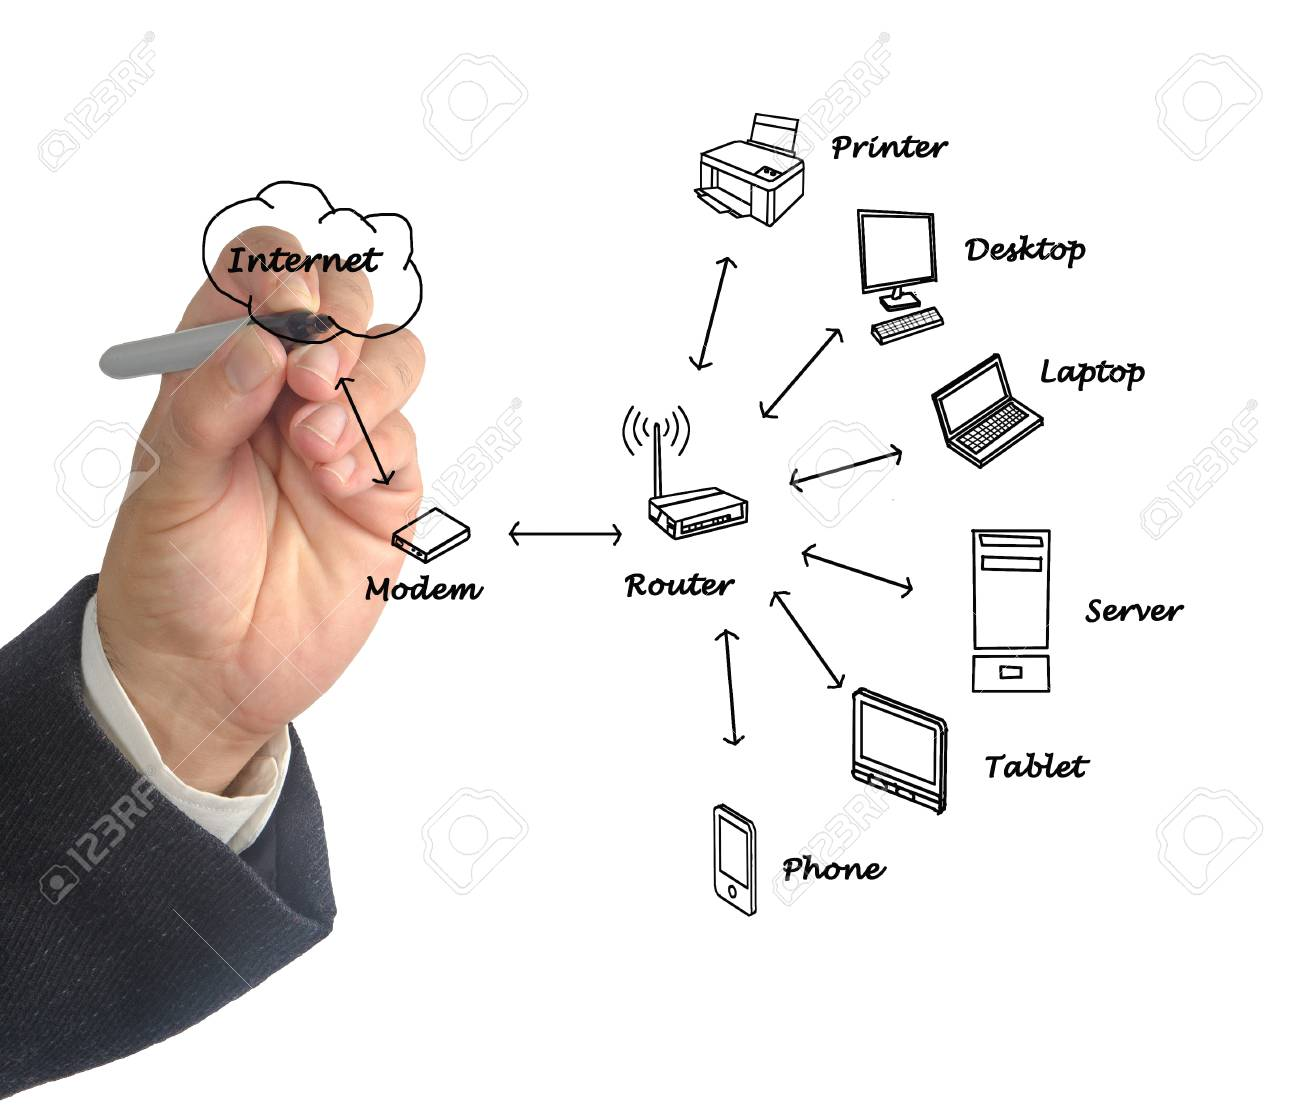 Home Network Diagram Stock Photo Picture And Royalty Free Image Basic 25660987